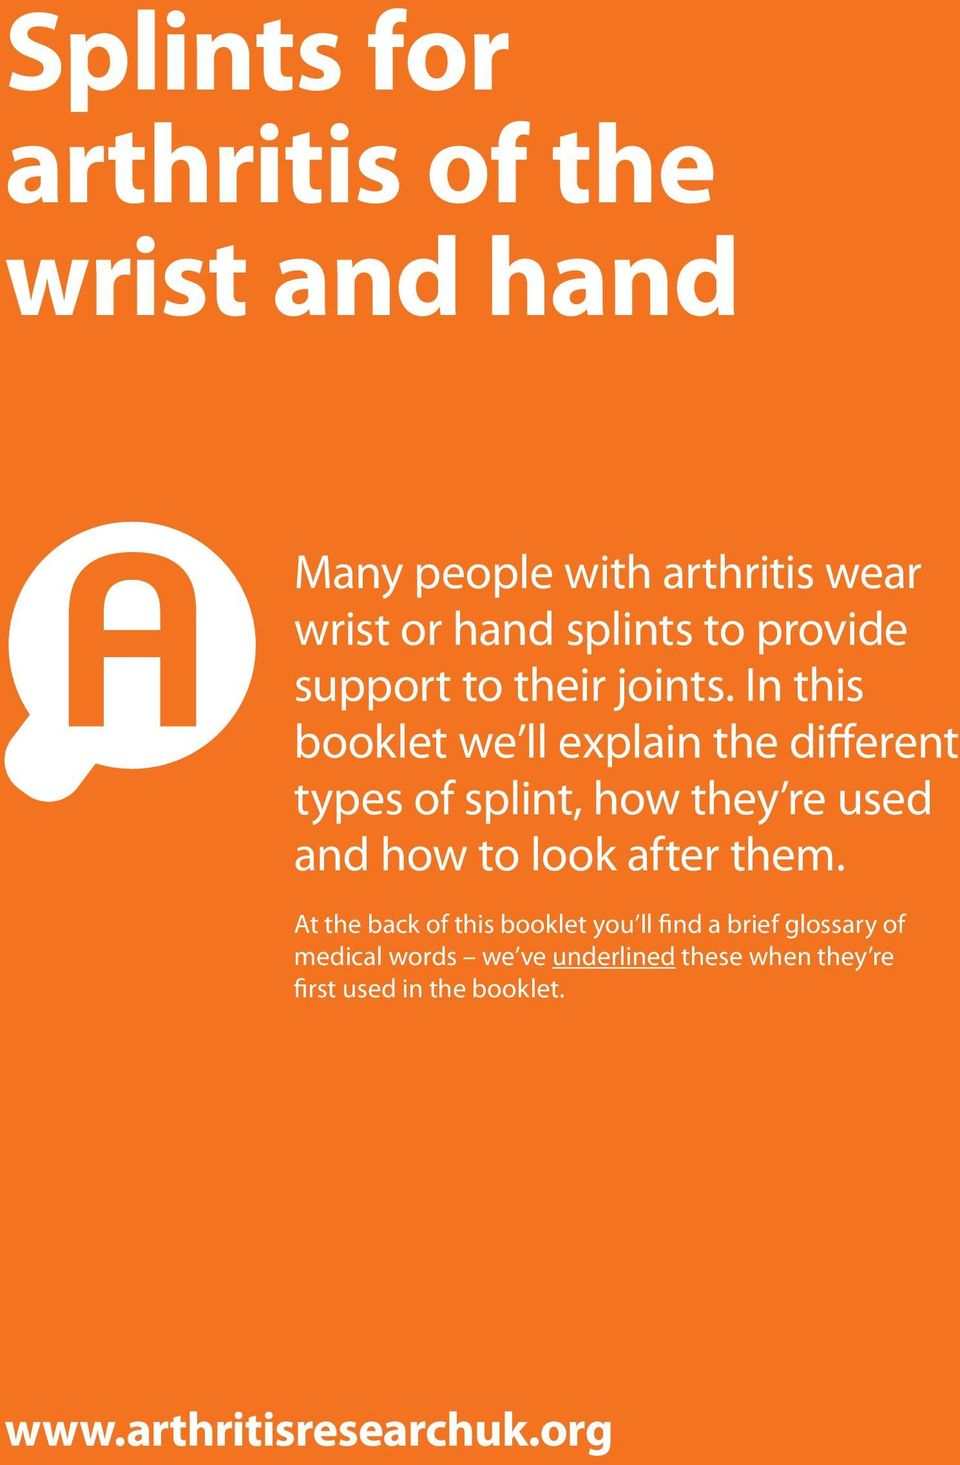 In this booklet we ll explain the different types of splint, how they re used and how to look